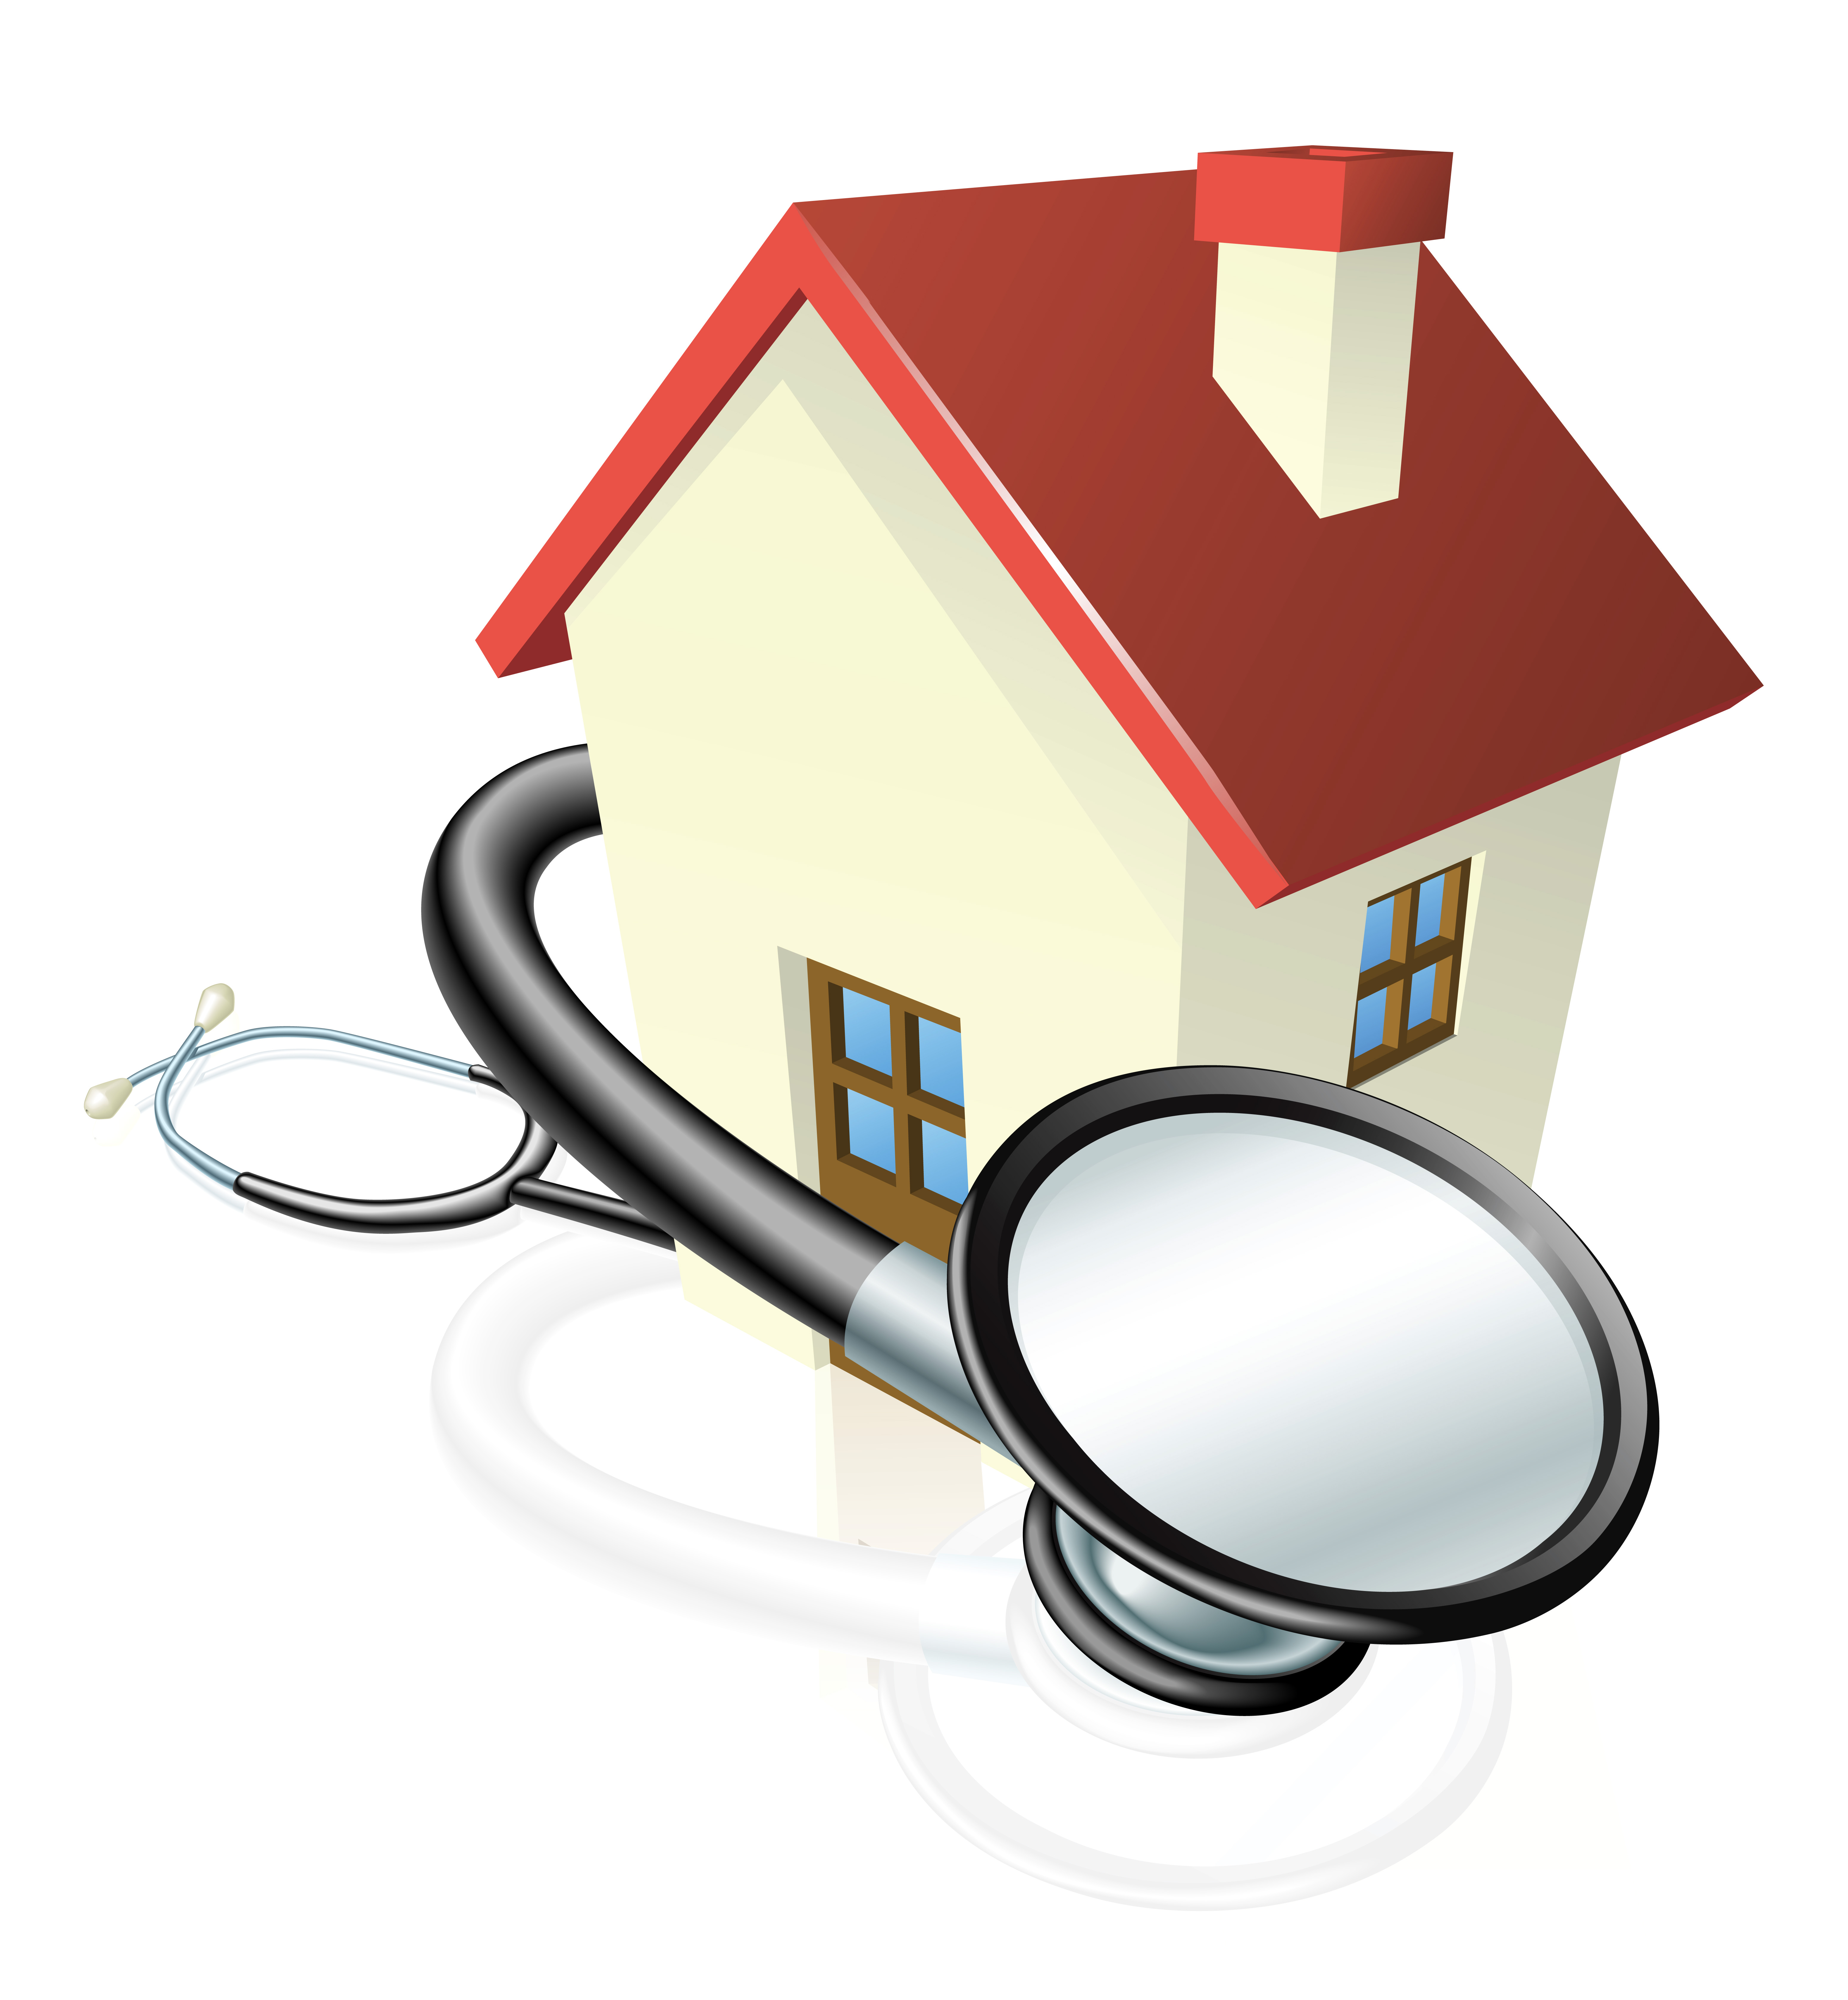 House and stethoscope concept.